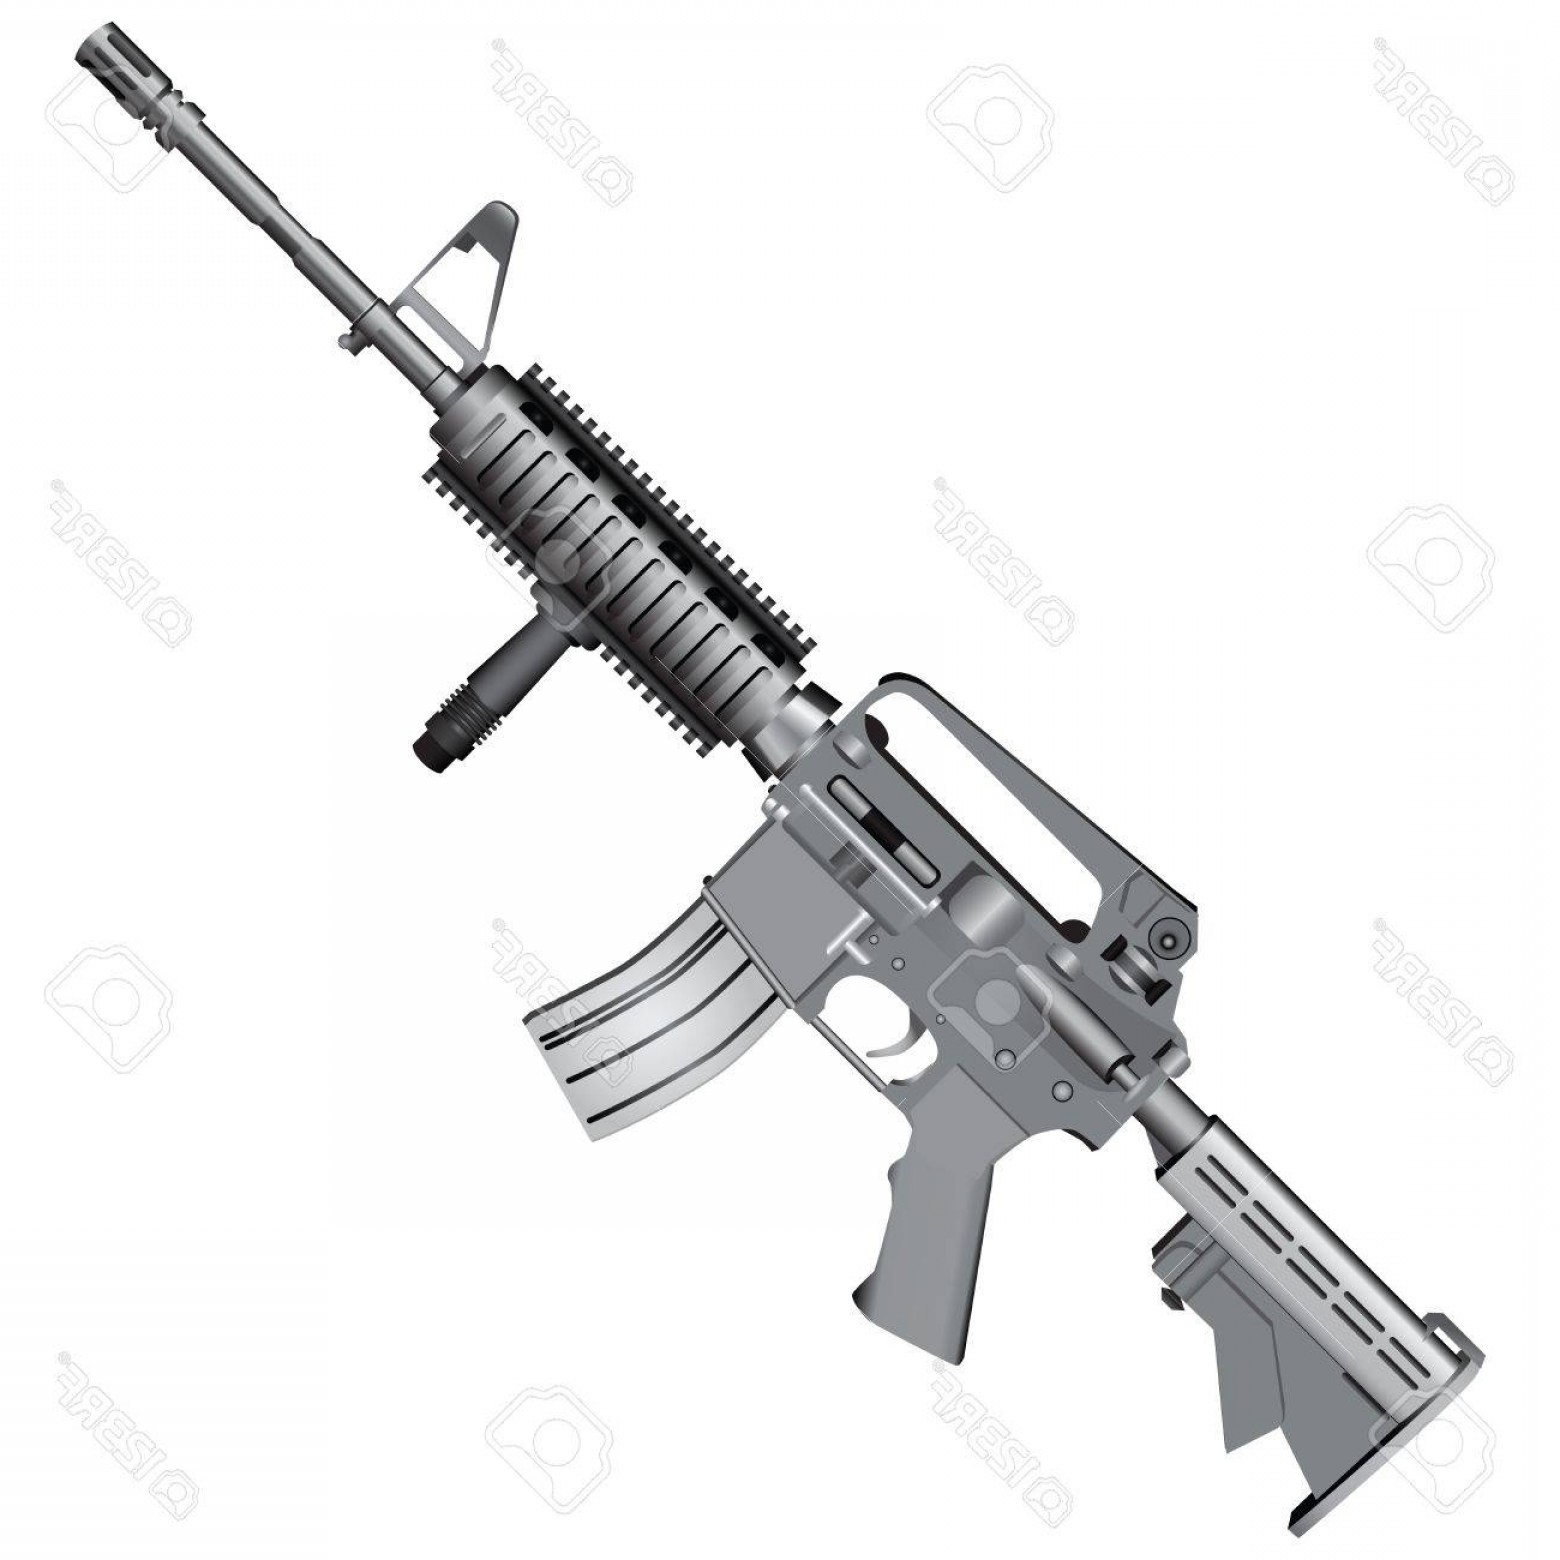 M4 Gun Vector: Photom Carbine Is Armed With The U S Army